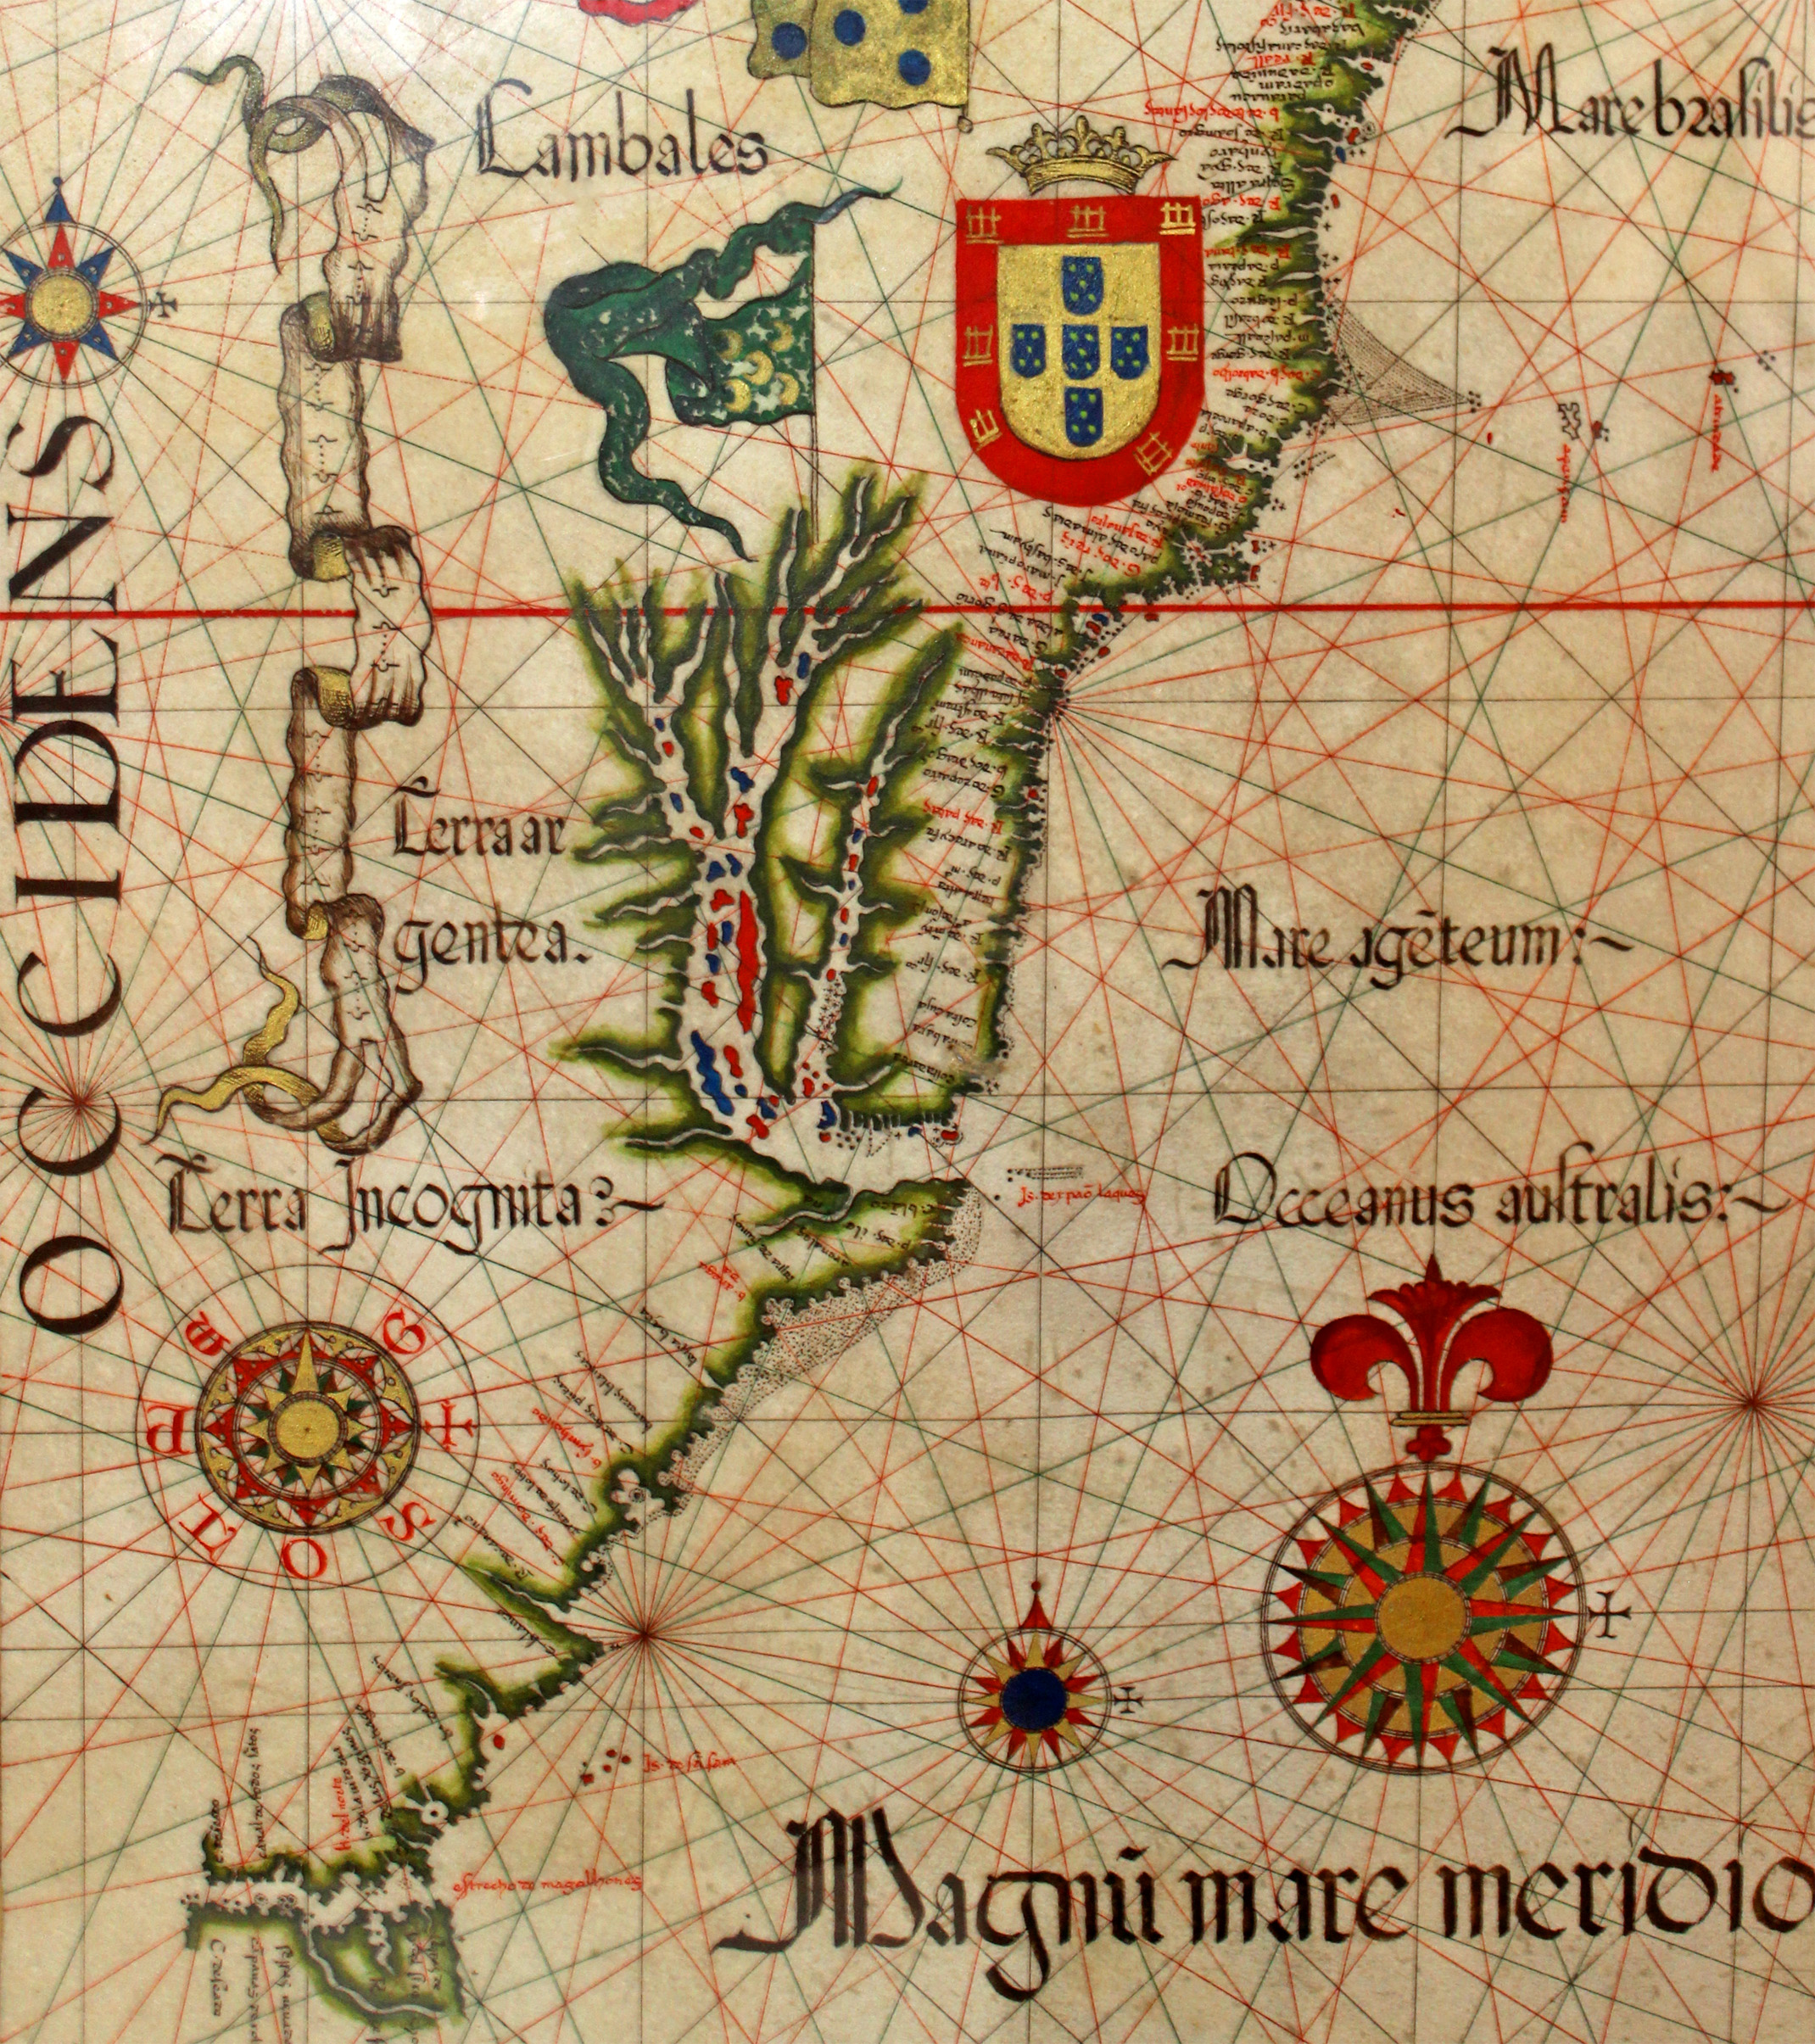 16th-century nautical chart showing the recently discovered brazilian photo